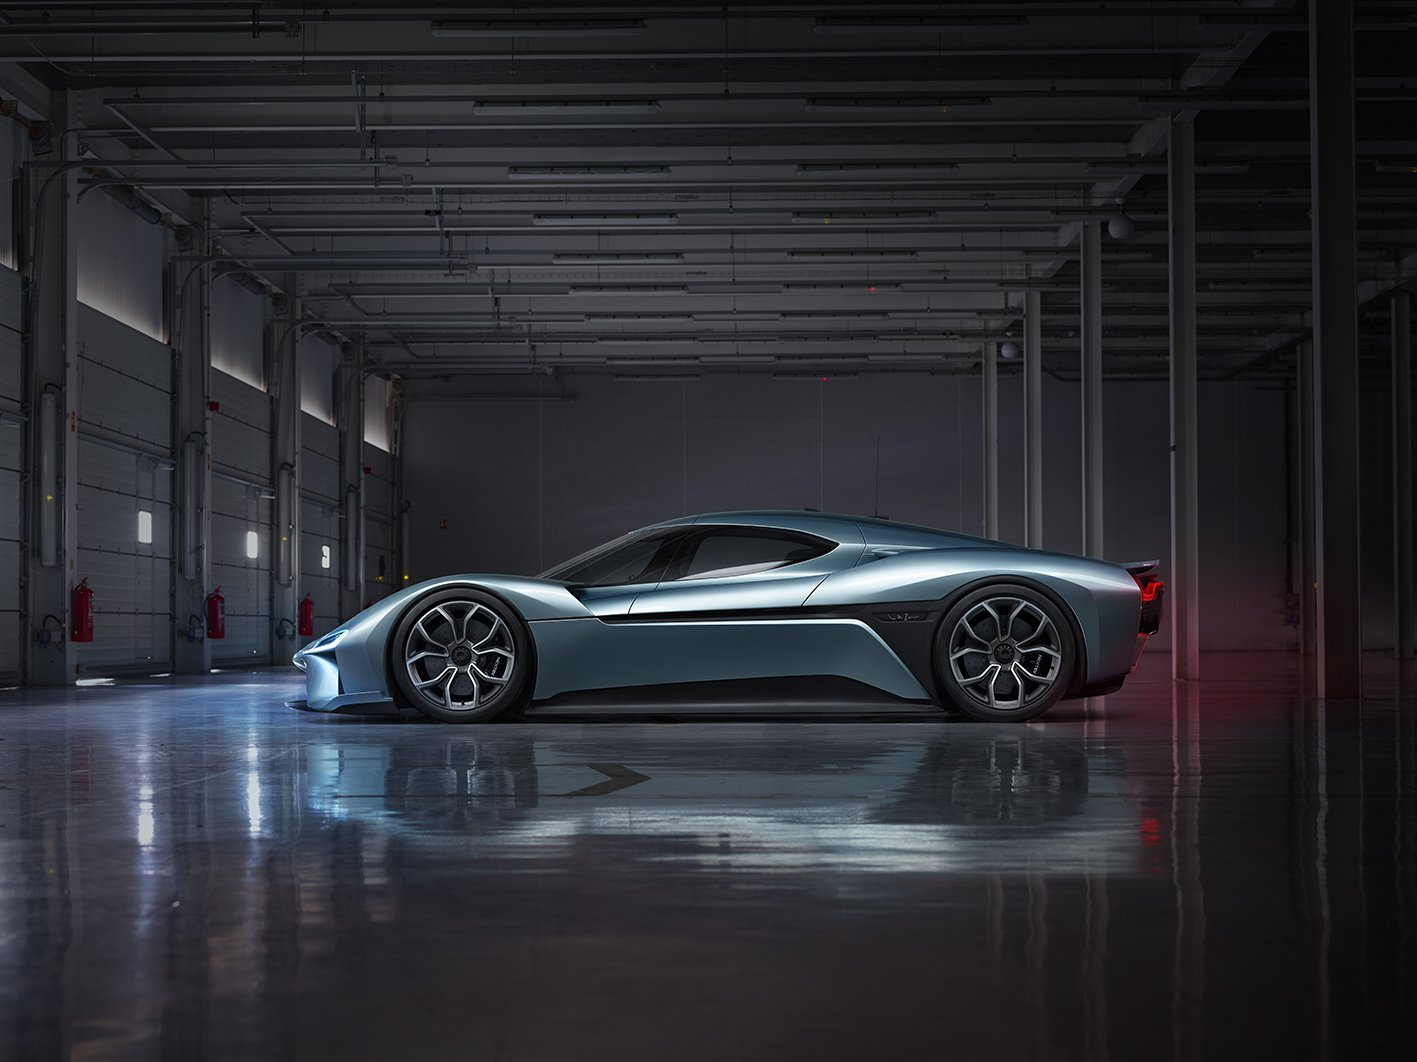 The worlds fastest electric car -  The World S Fastest Nio Ep9 Side